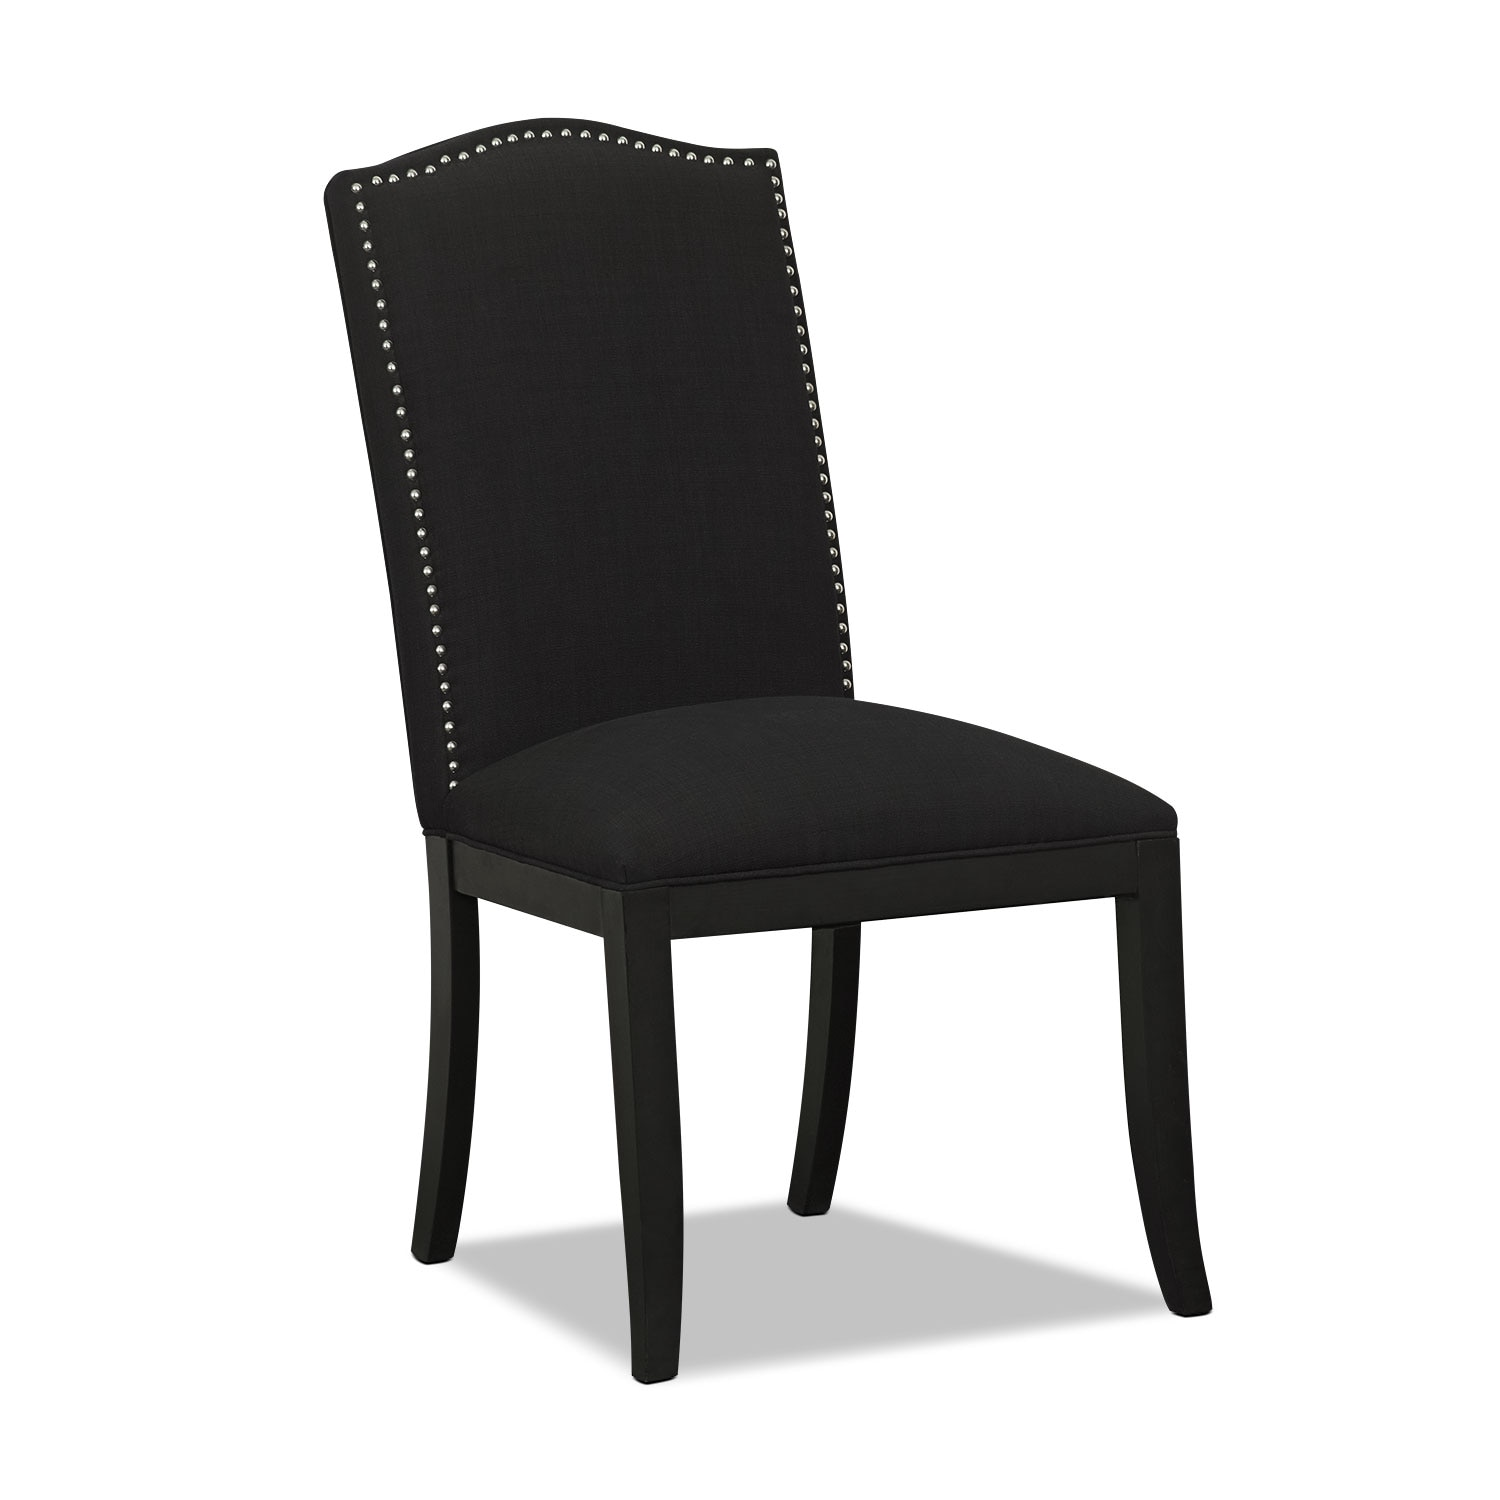 Morris Accent Chair - Black